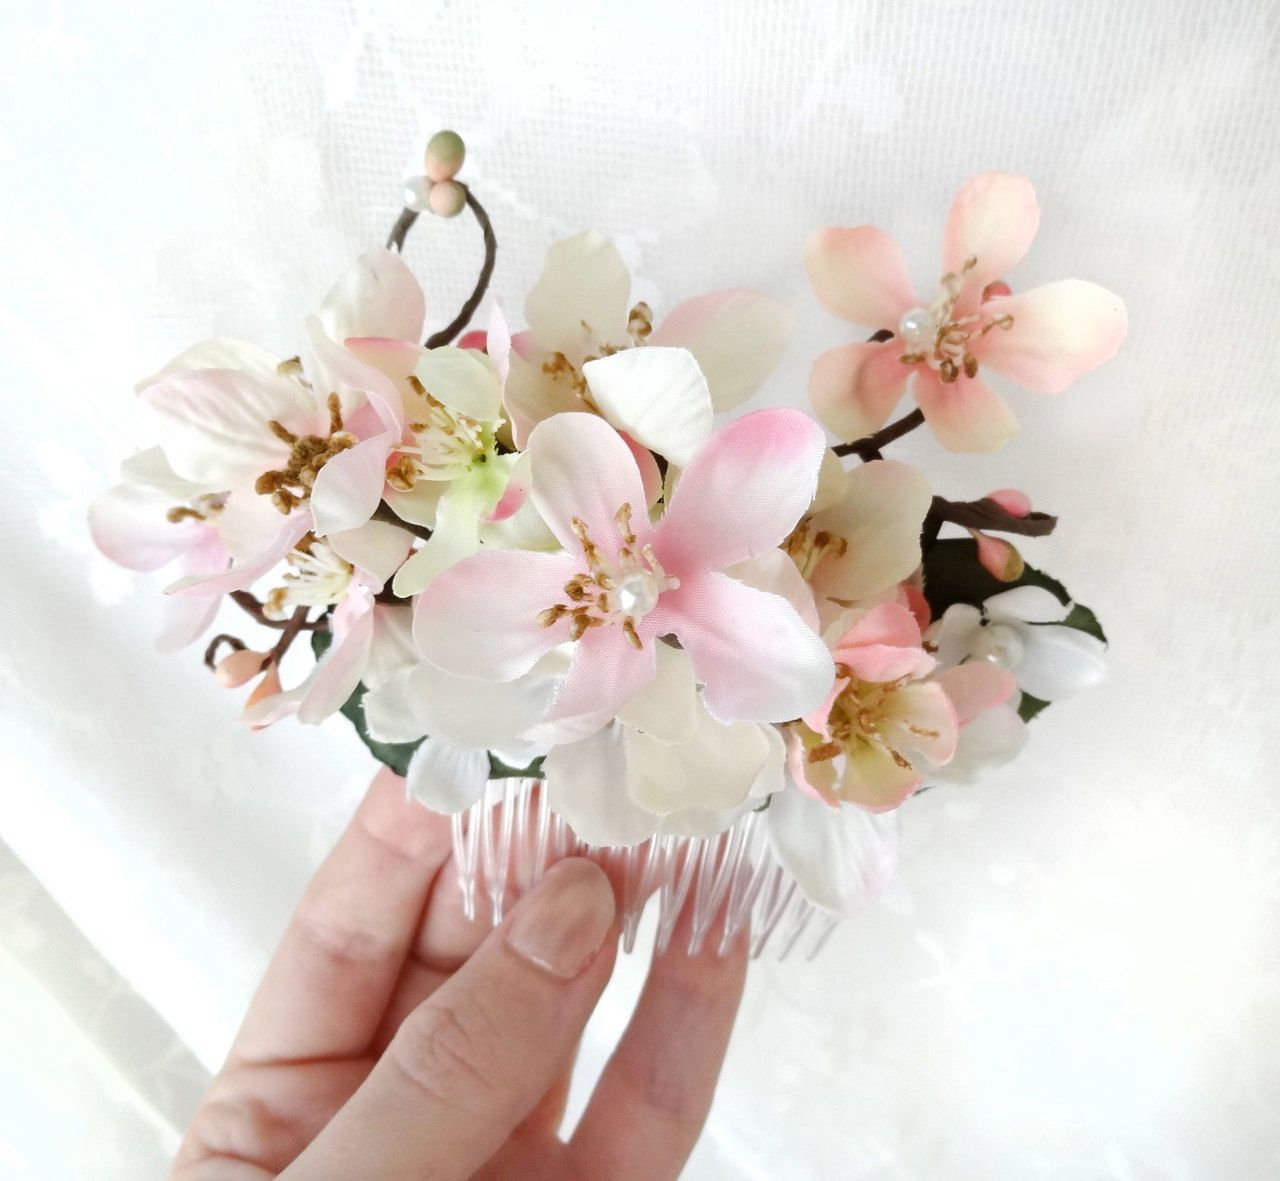 Cherry Blossom Hair Comb Blossom Hair Accessories Pink Floral Hair Comb Pink Flower Hair Piece Bridal Hair Comb Spring Twigs Pearls Bridal Hair Flowers Cherry Blossom Wedding Wedding Hair Accessories